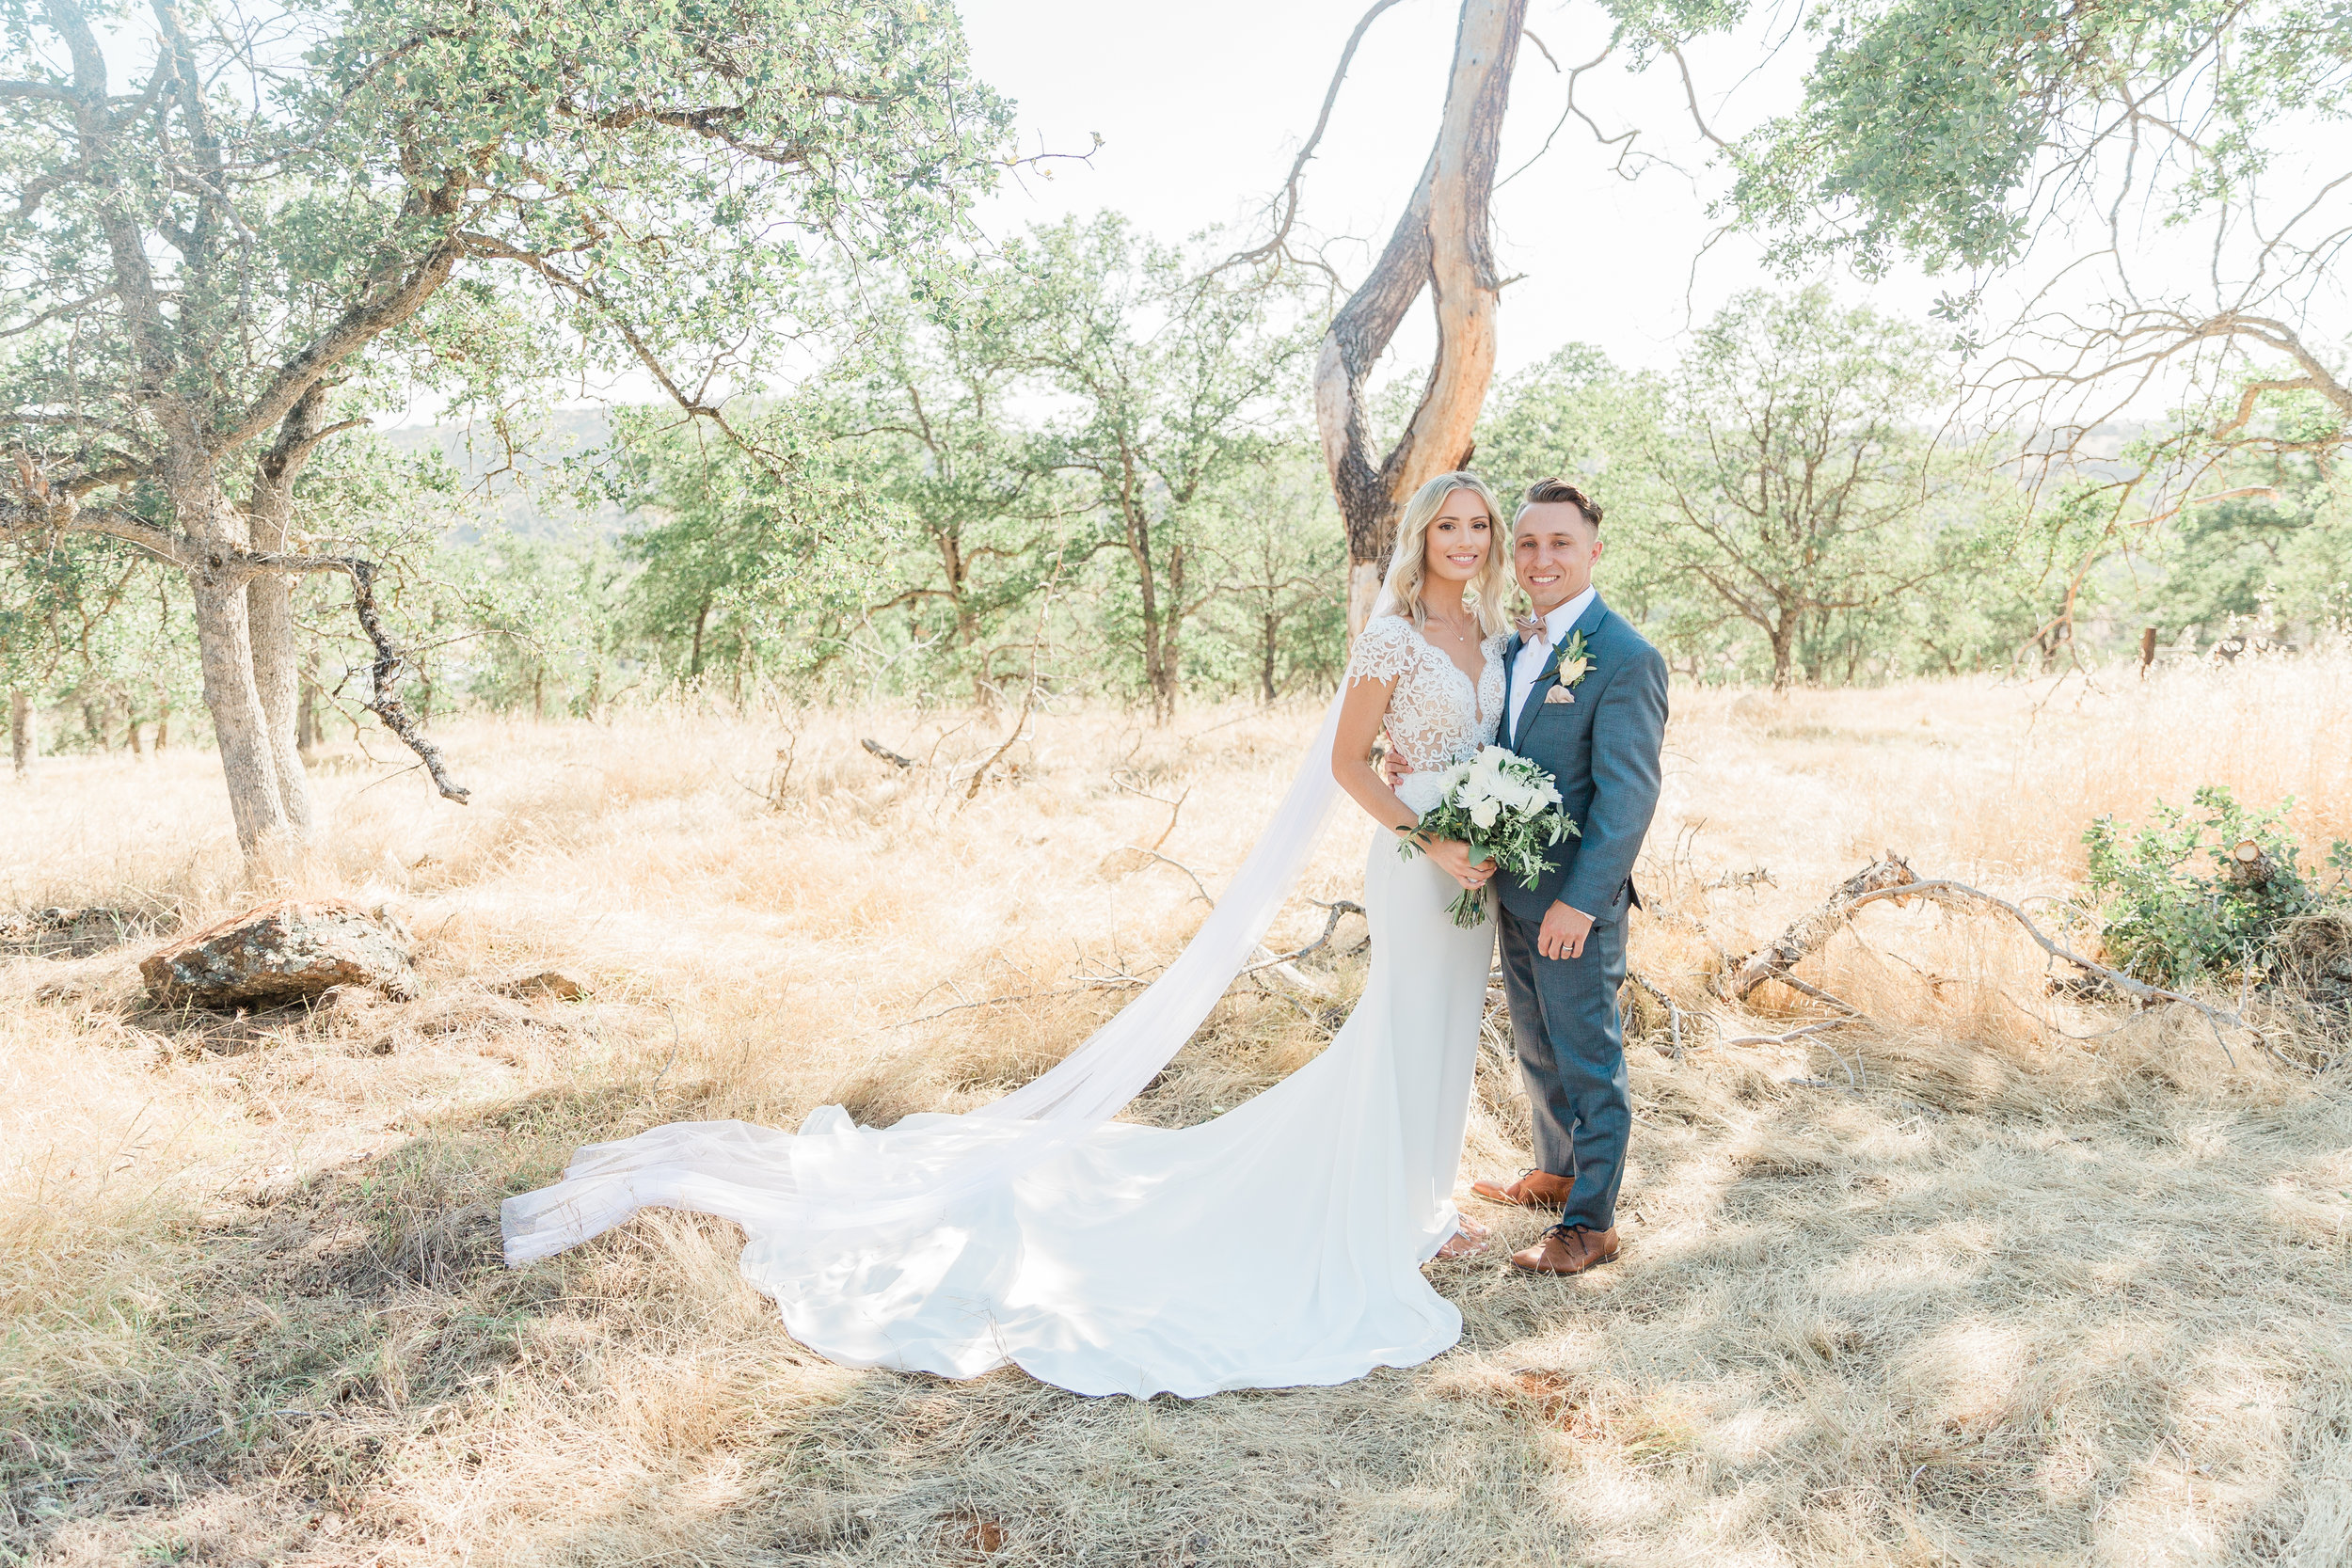 Kaitlynn and Colby - Married - Sneaks - Lauren Alisse Photography-83.jpg